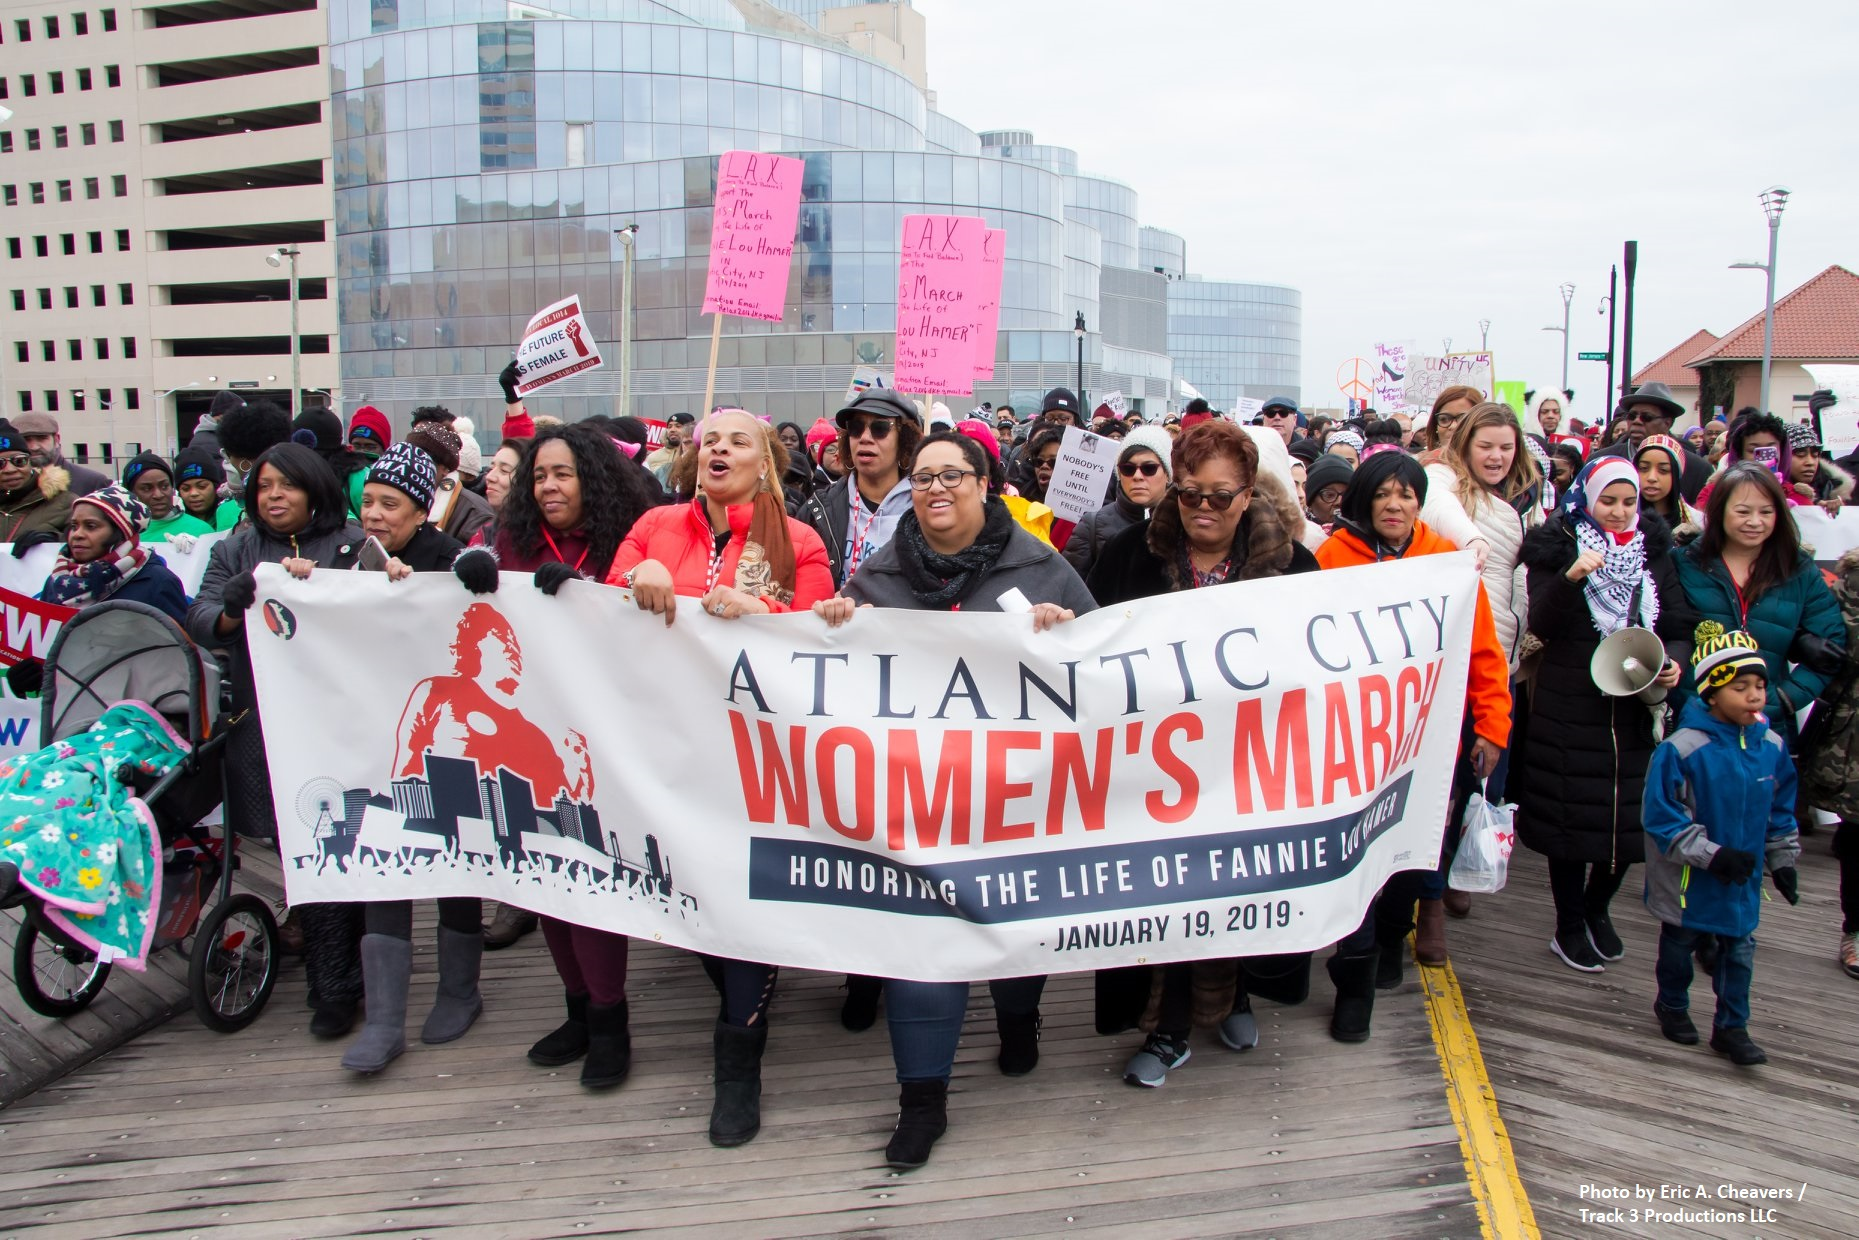 Atlantic City Women's March - Photo by Eric A. Cheavers / Track 3 Productions LLC